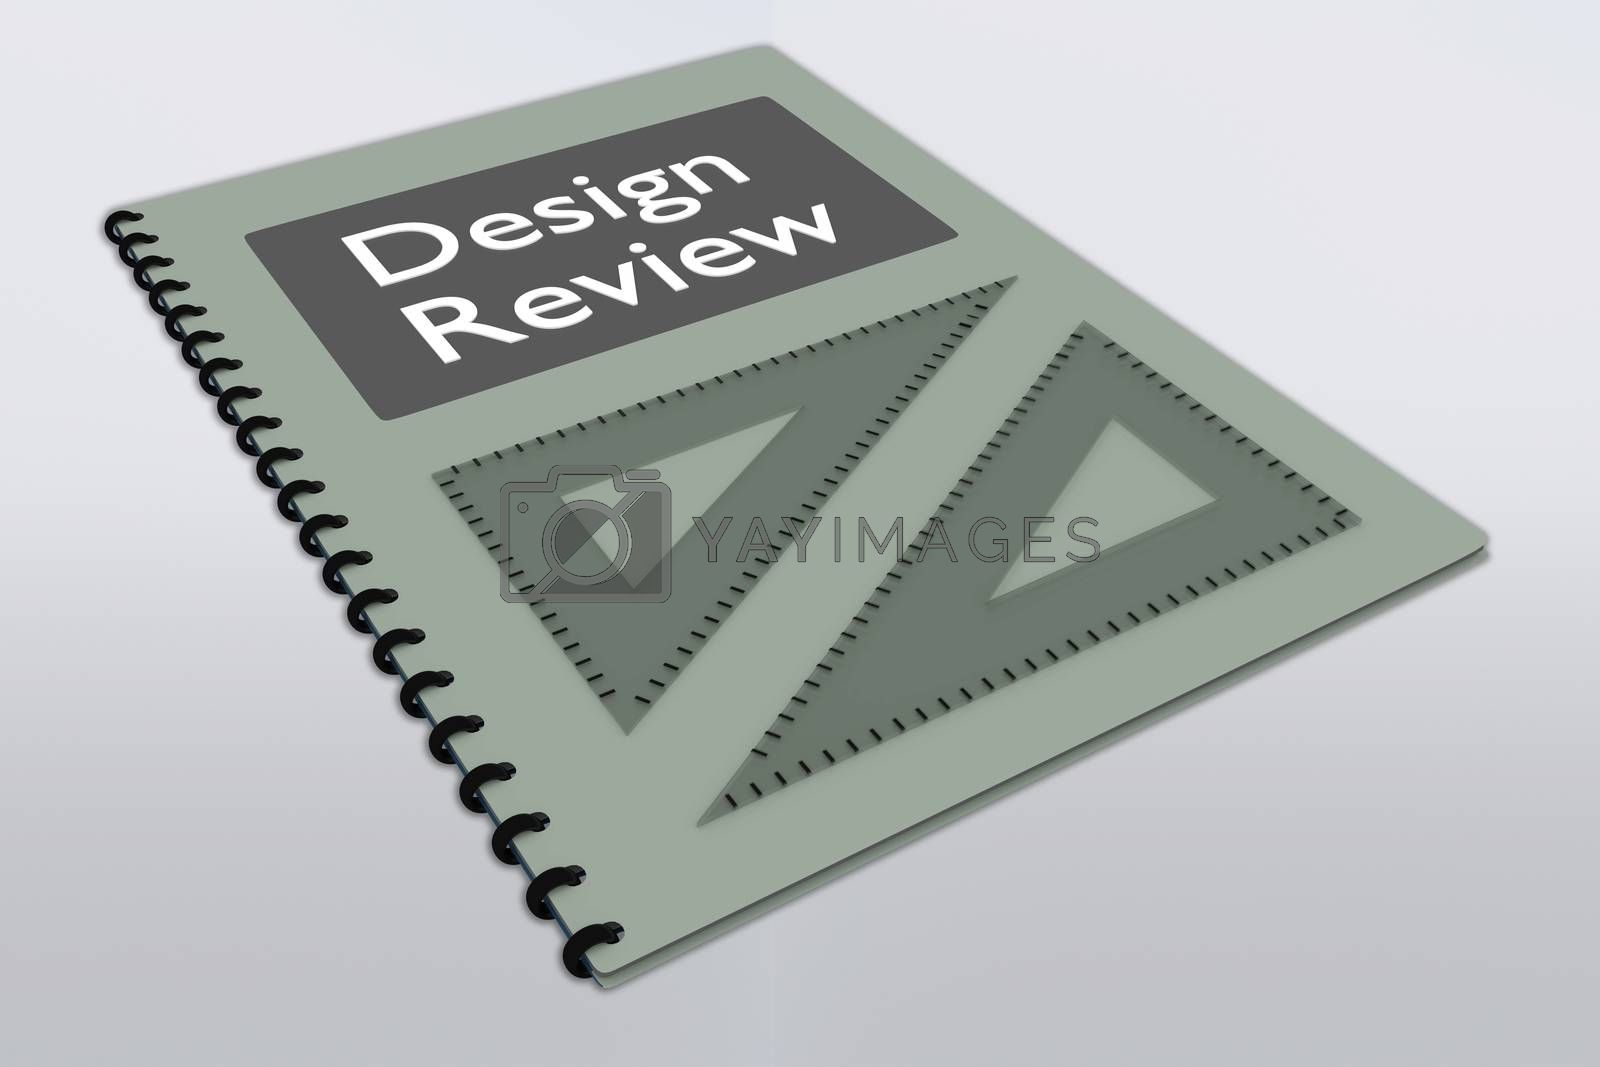 3D illustration of Design Review script on a booklet along with two triangle rulers, isolated over gray gradient.